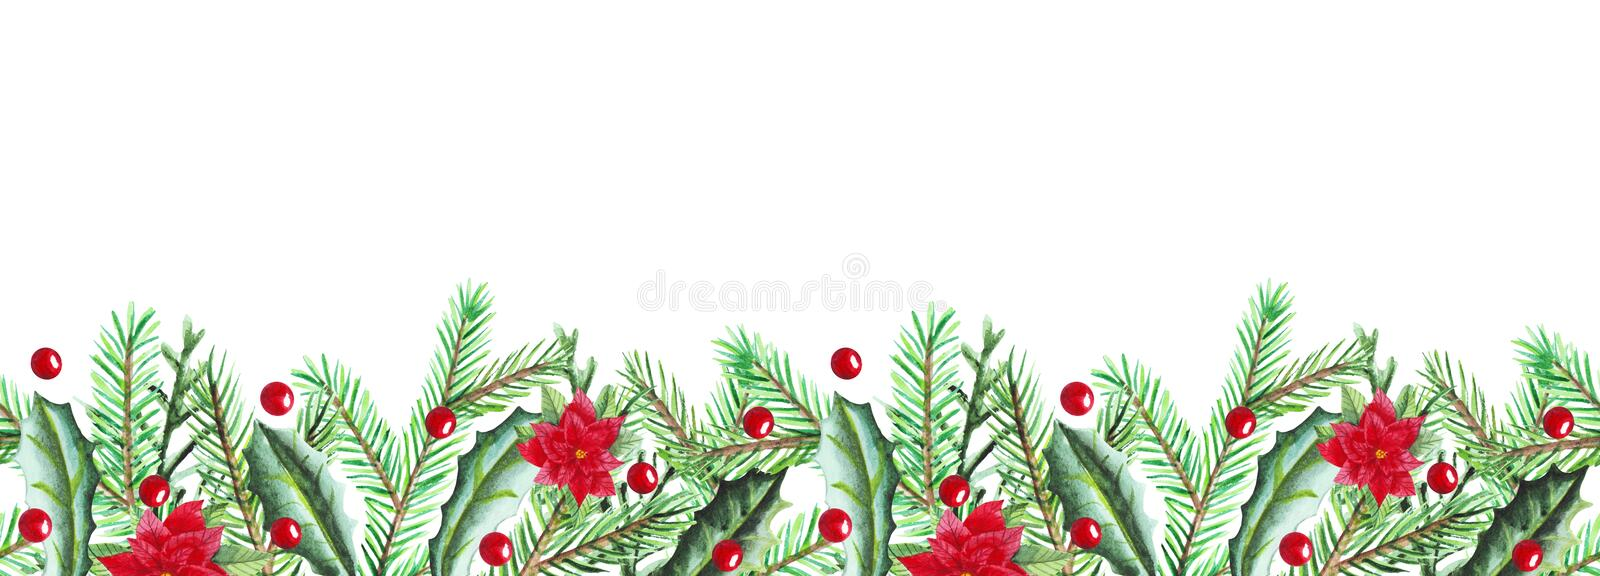 Christmas fir branches, holly, poinsettia border in watercolor. Bright frame for postcard, web design or post in social networks. stock illustration